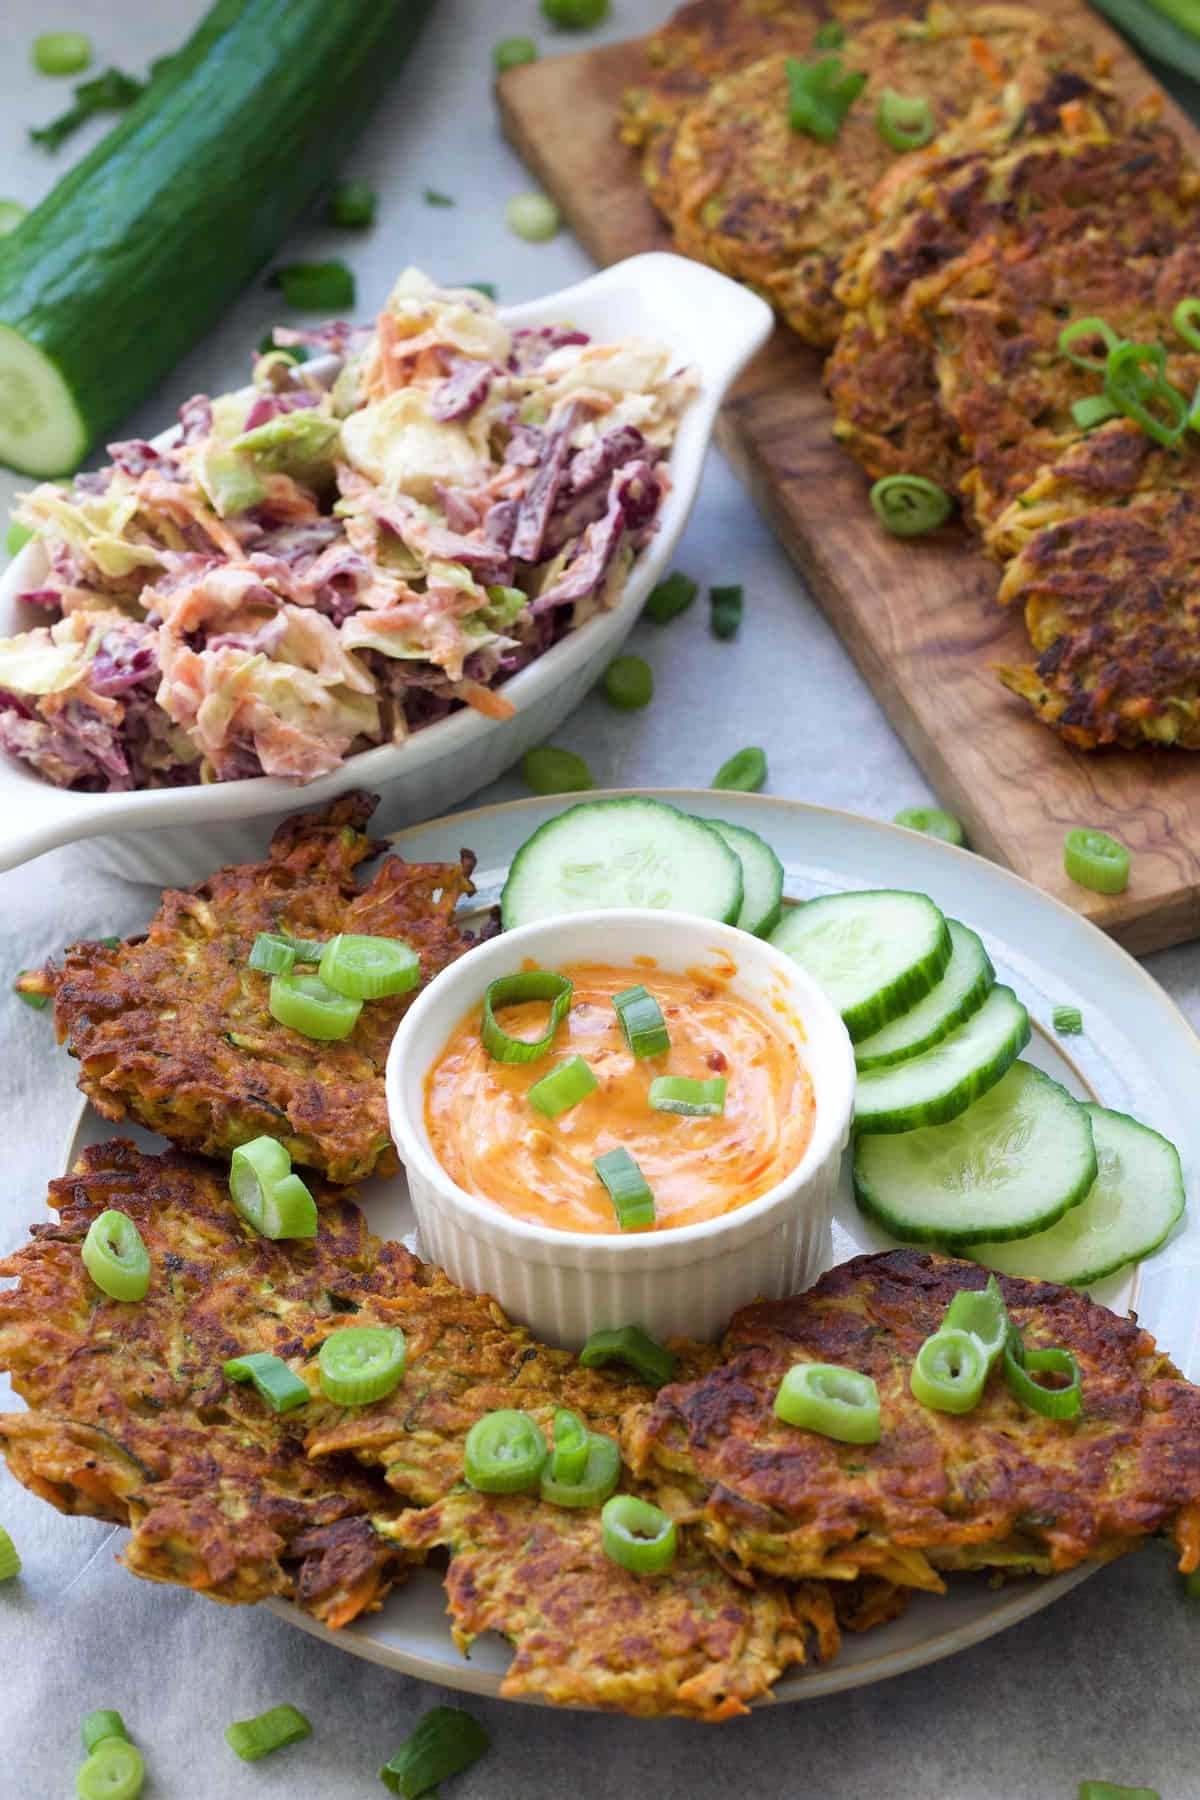 Vegan vegetable fritters on a plate with cucumber slices & sauce.